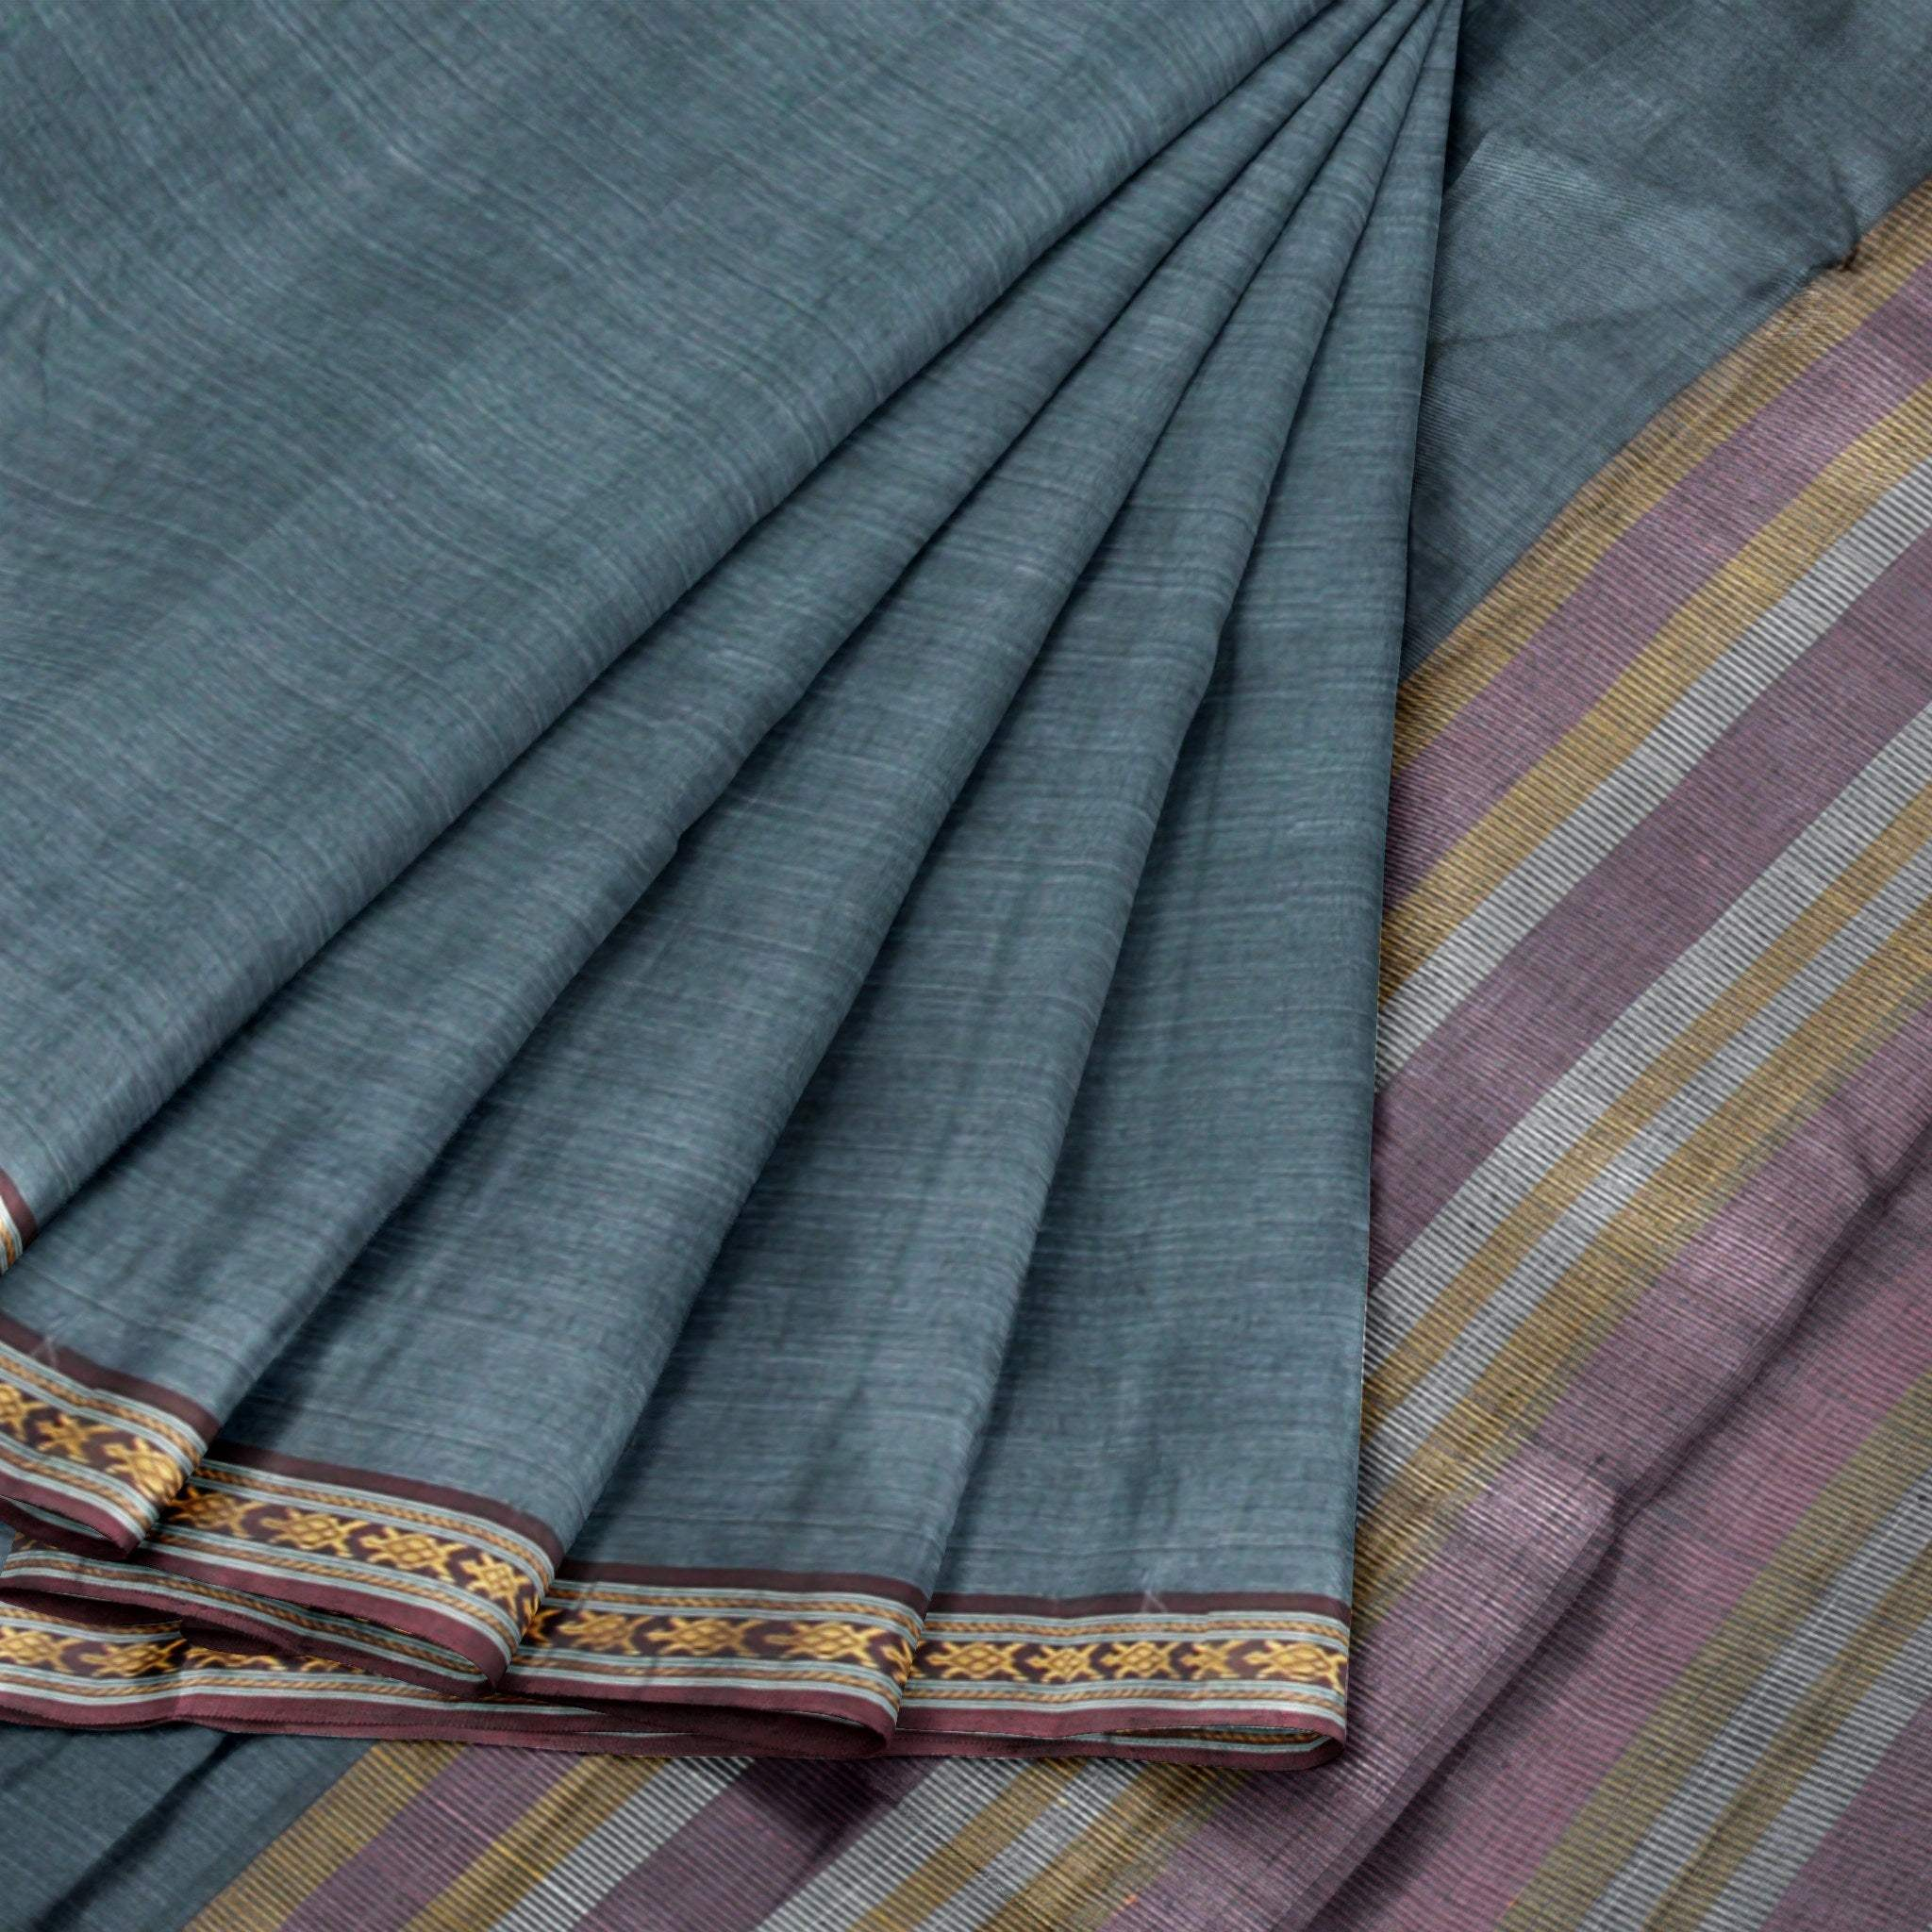 BB100032-Handloom Cotton Saree in Pine Green